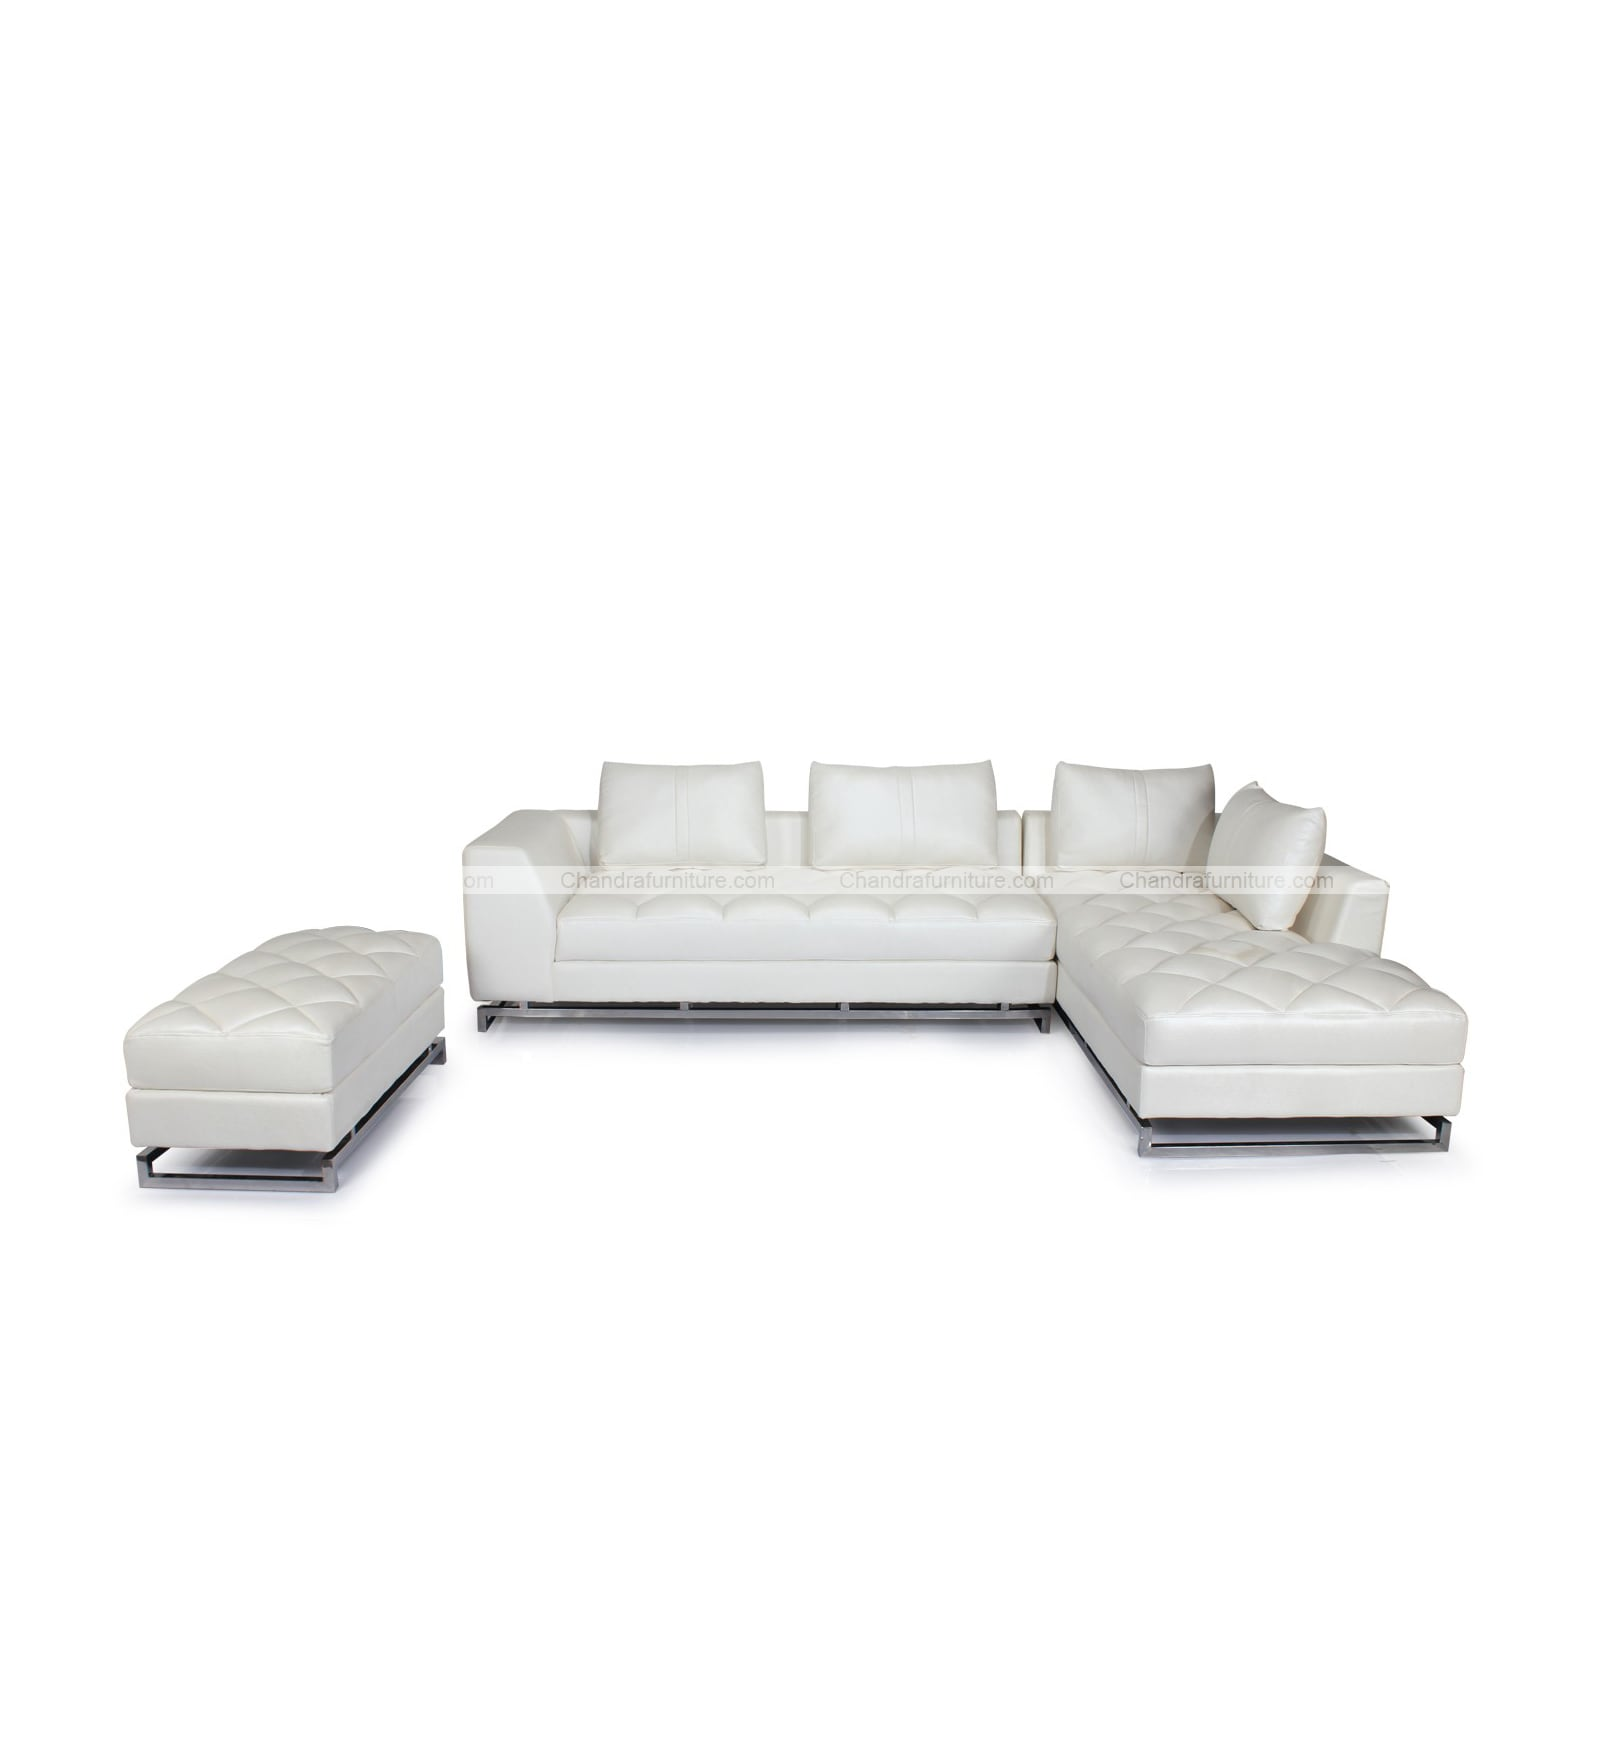 Chandra Furniture Rejoice L Shape Sofa Set With One Large Puffy In White Colour Lathrite